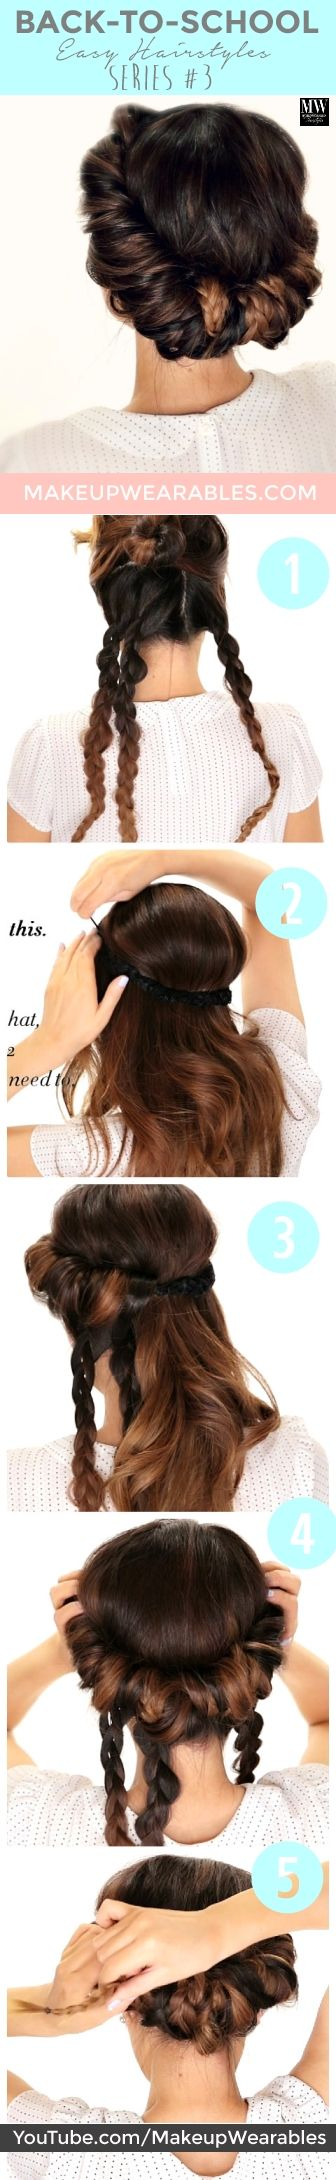 Cute Braided Headband Updo Hair Tutorial | #Hairstyles